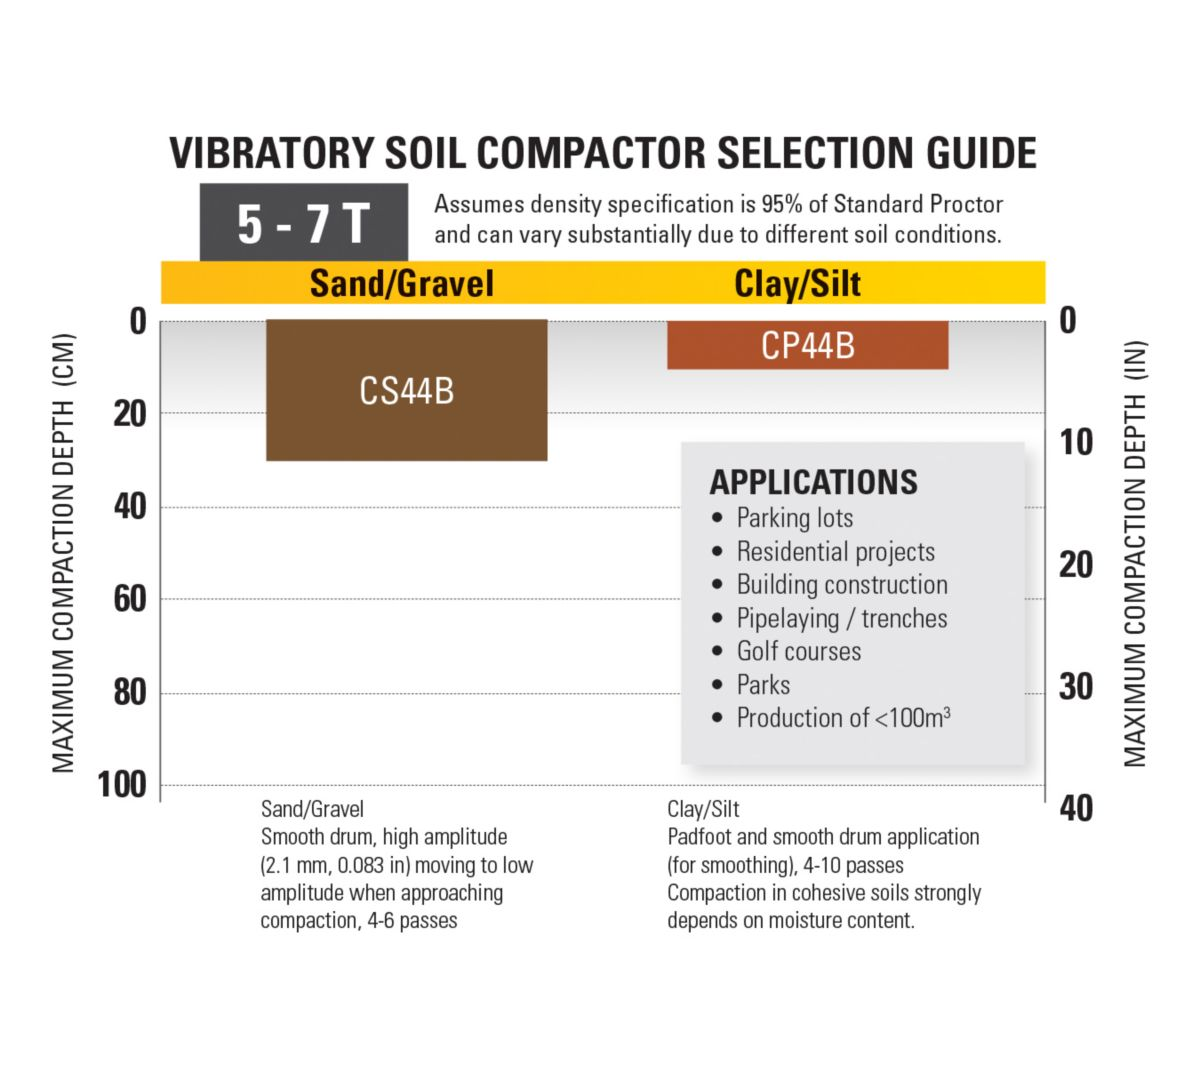 5-7T Vibratory Soil Compactor Selection Guide>